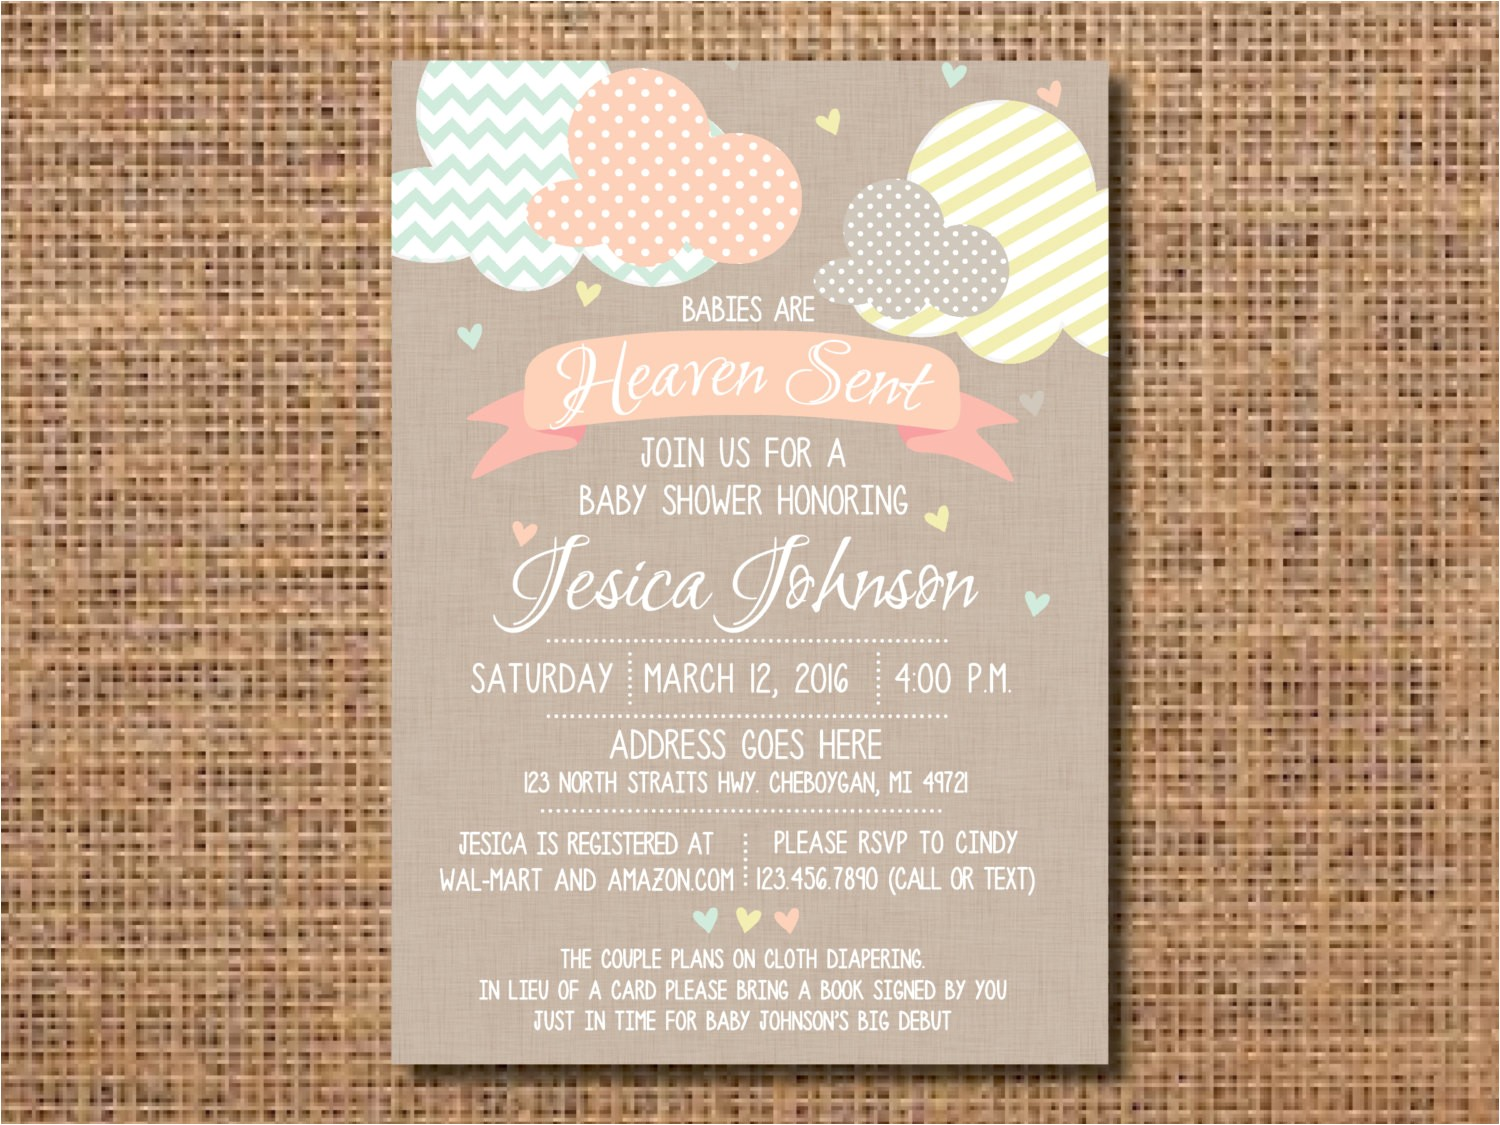 heaven sent baby shower invitation ref=market